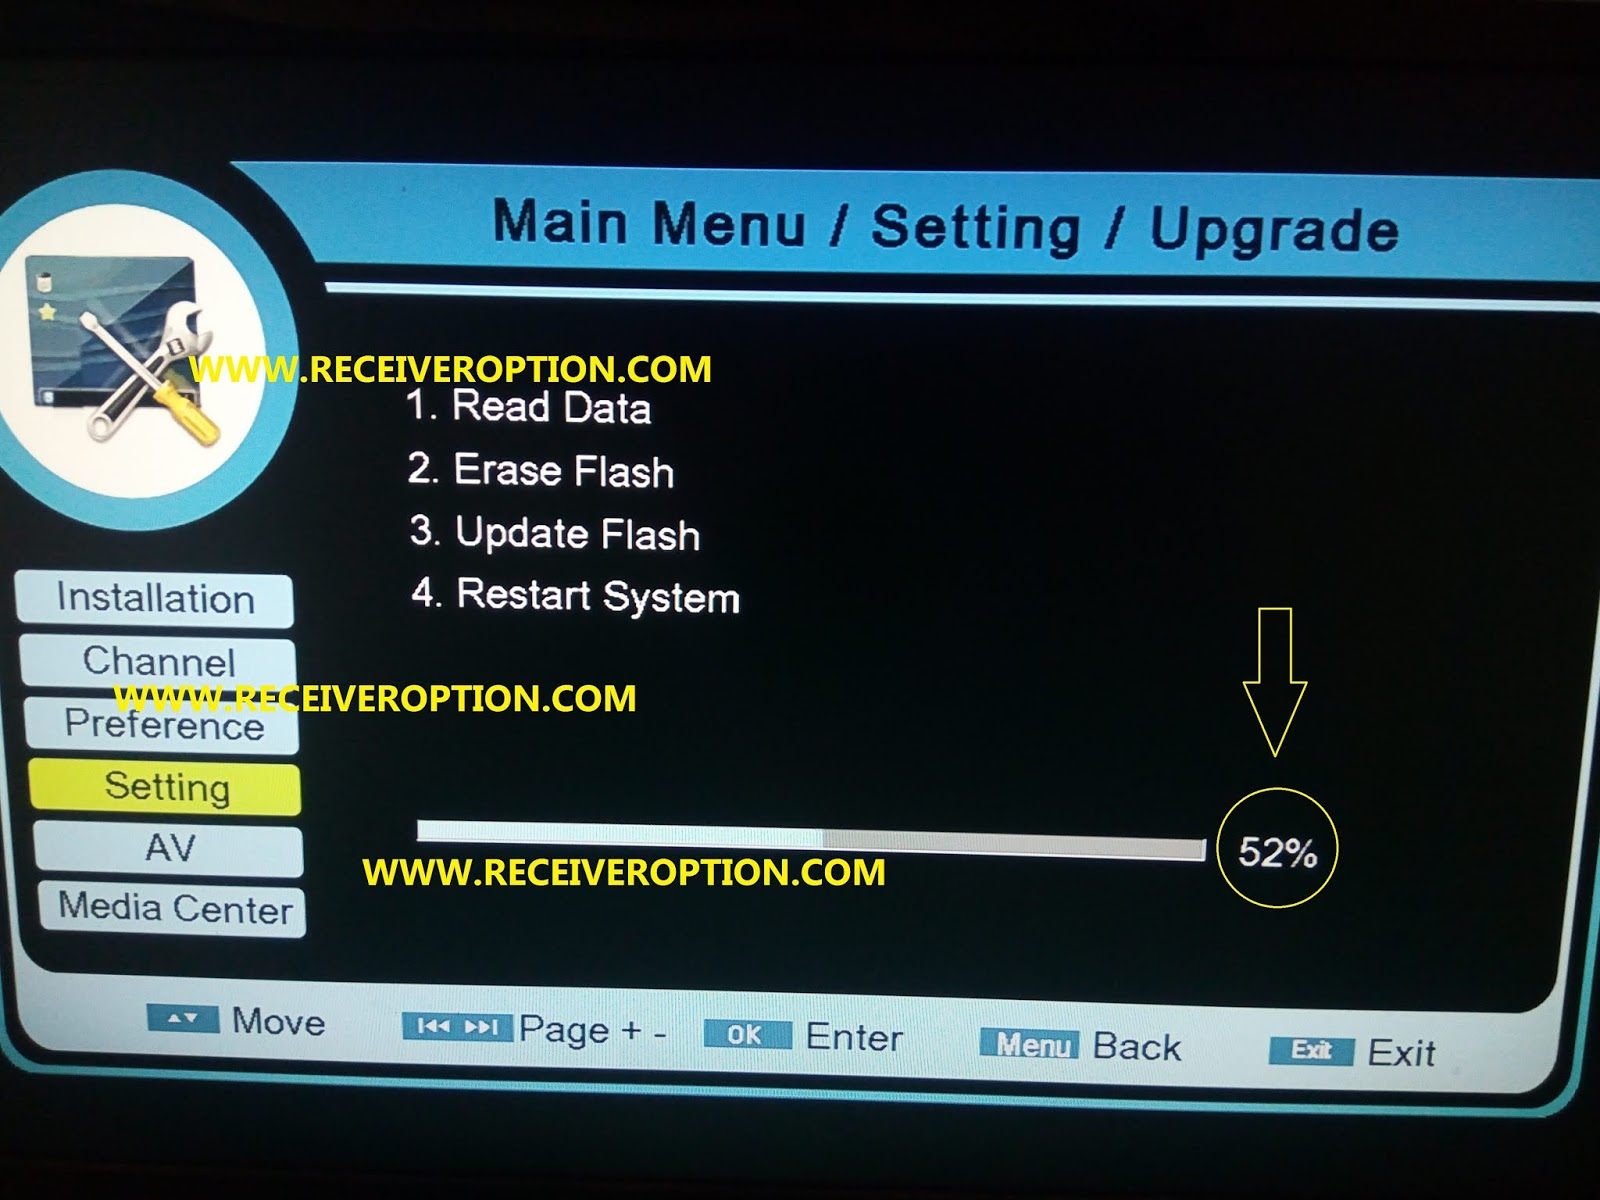 PROTOCOL 8MB HD RECEIVERS POWERVU KEY NEW SOFTWARE BY USB